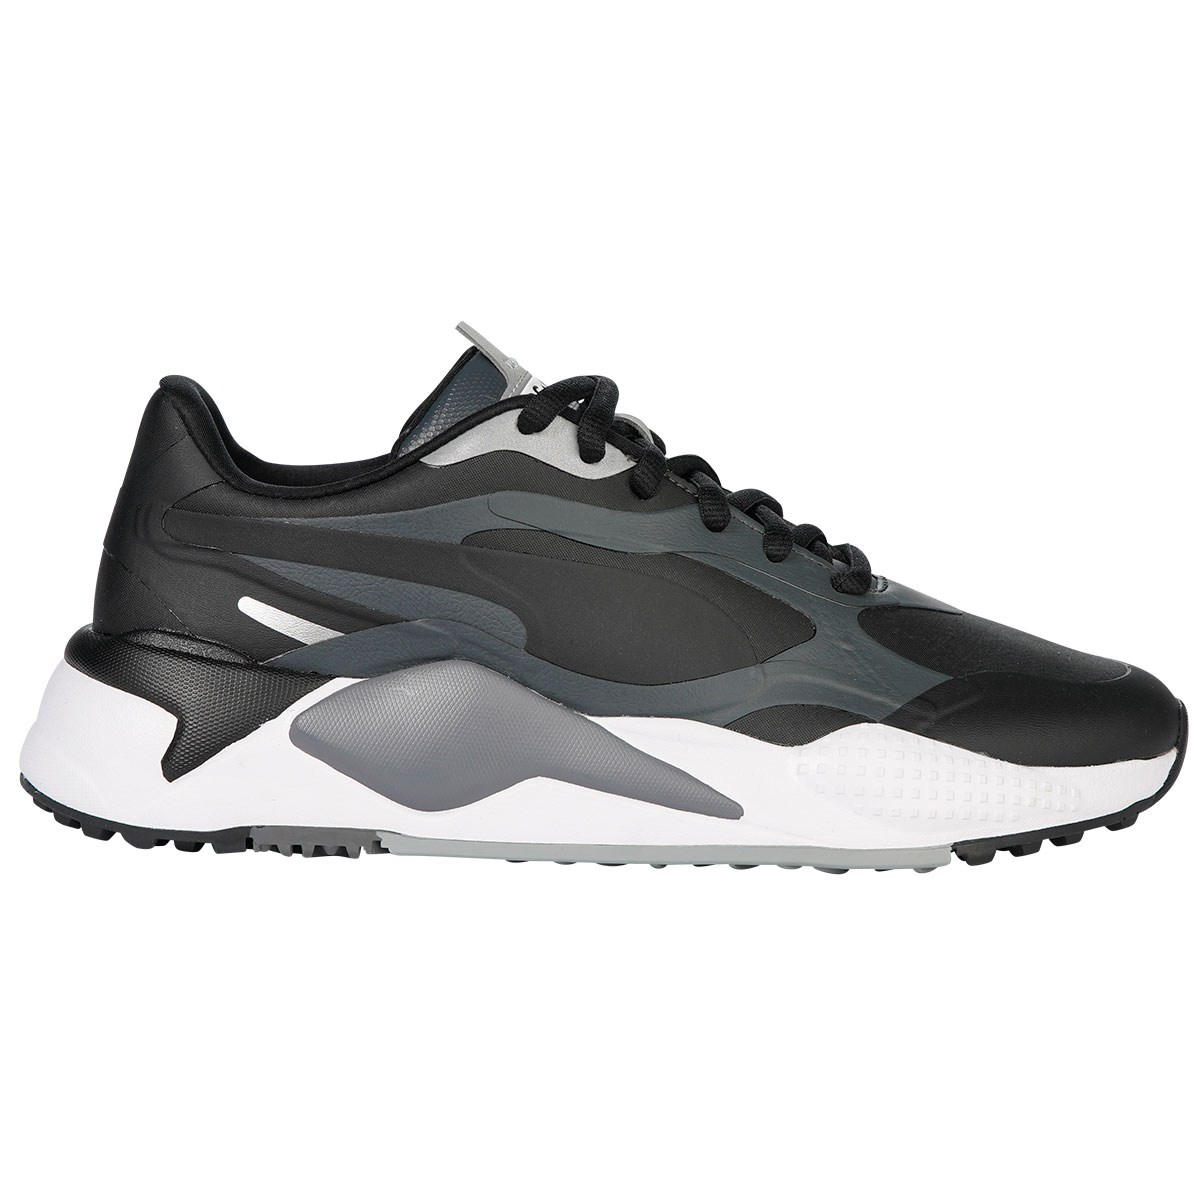 PUMA Golf RS-G Shoes from american golf